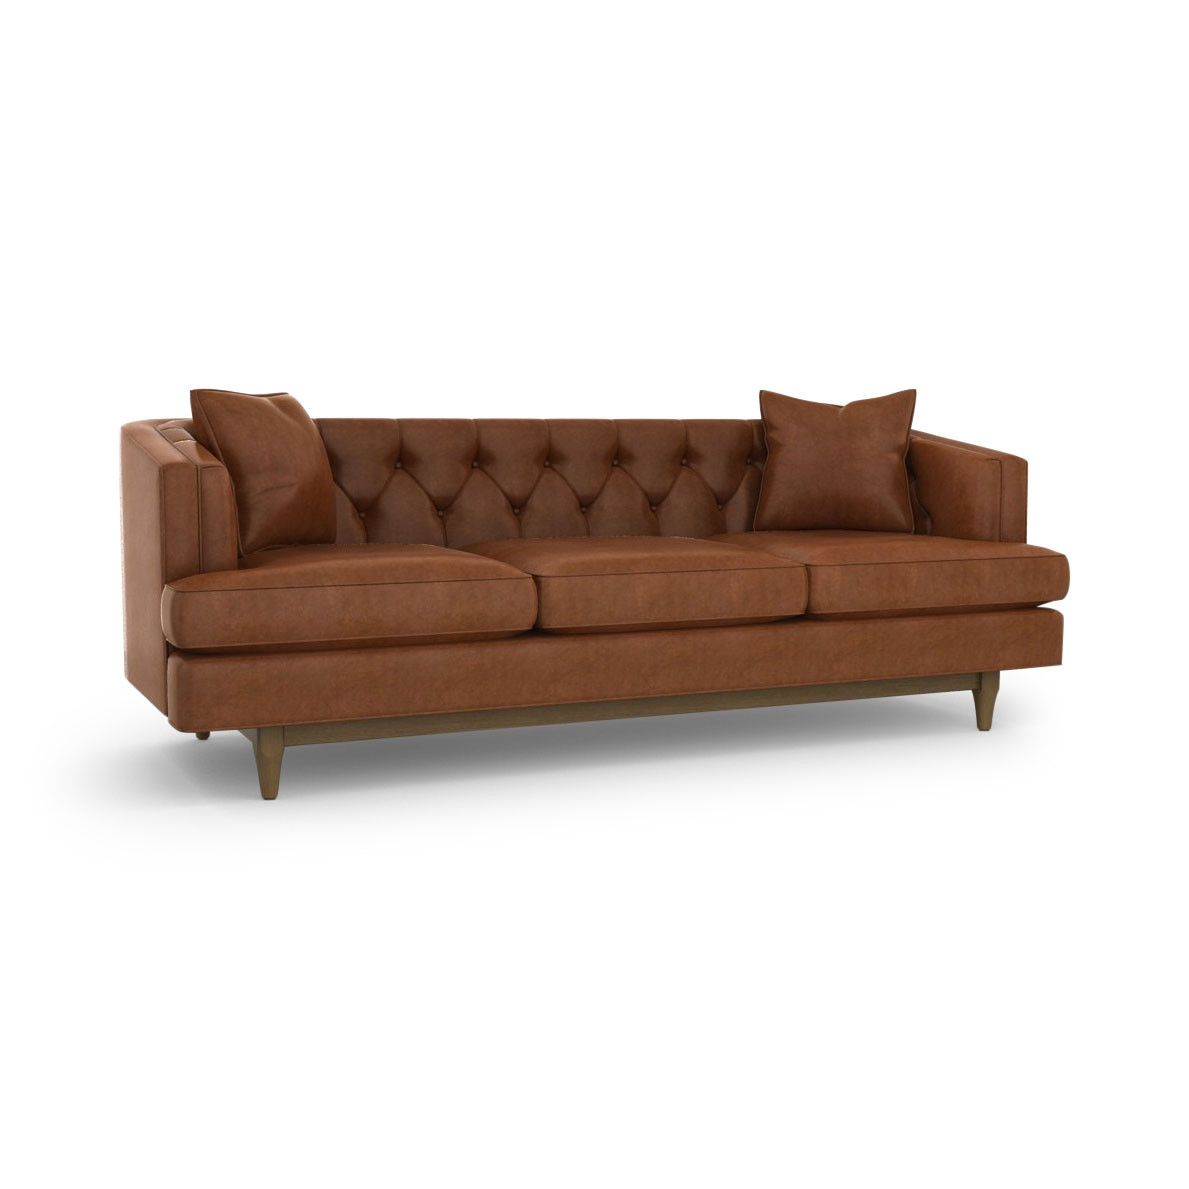 Chesterfield Tan Wonderful Furniture Sit On It Pinterest  # Timothy Hutton Muebles